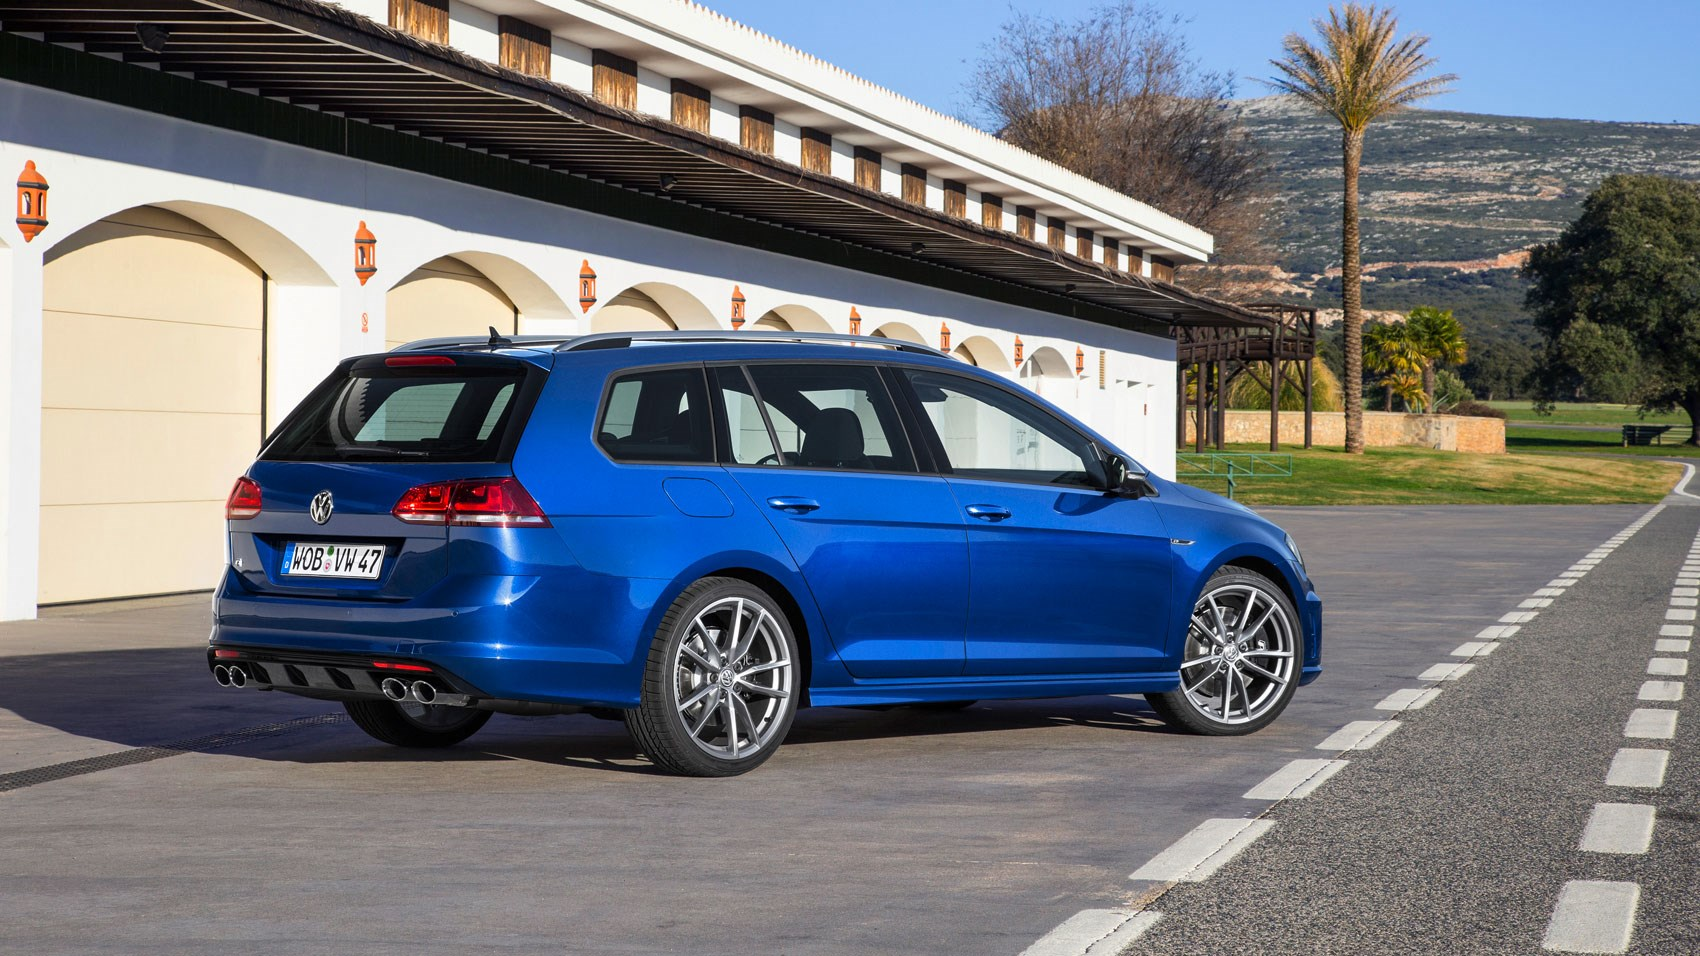 Like the hatch, the Golf R Estate gets a 296bhp 2.0-litre turbo engine